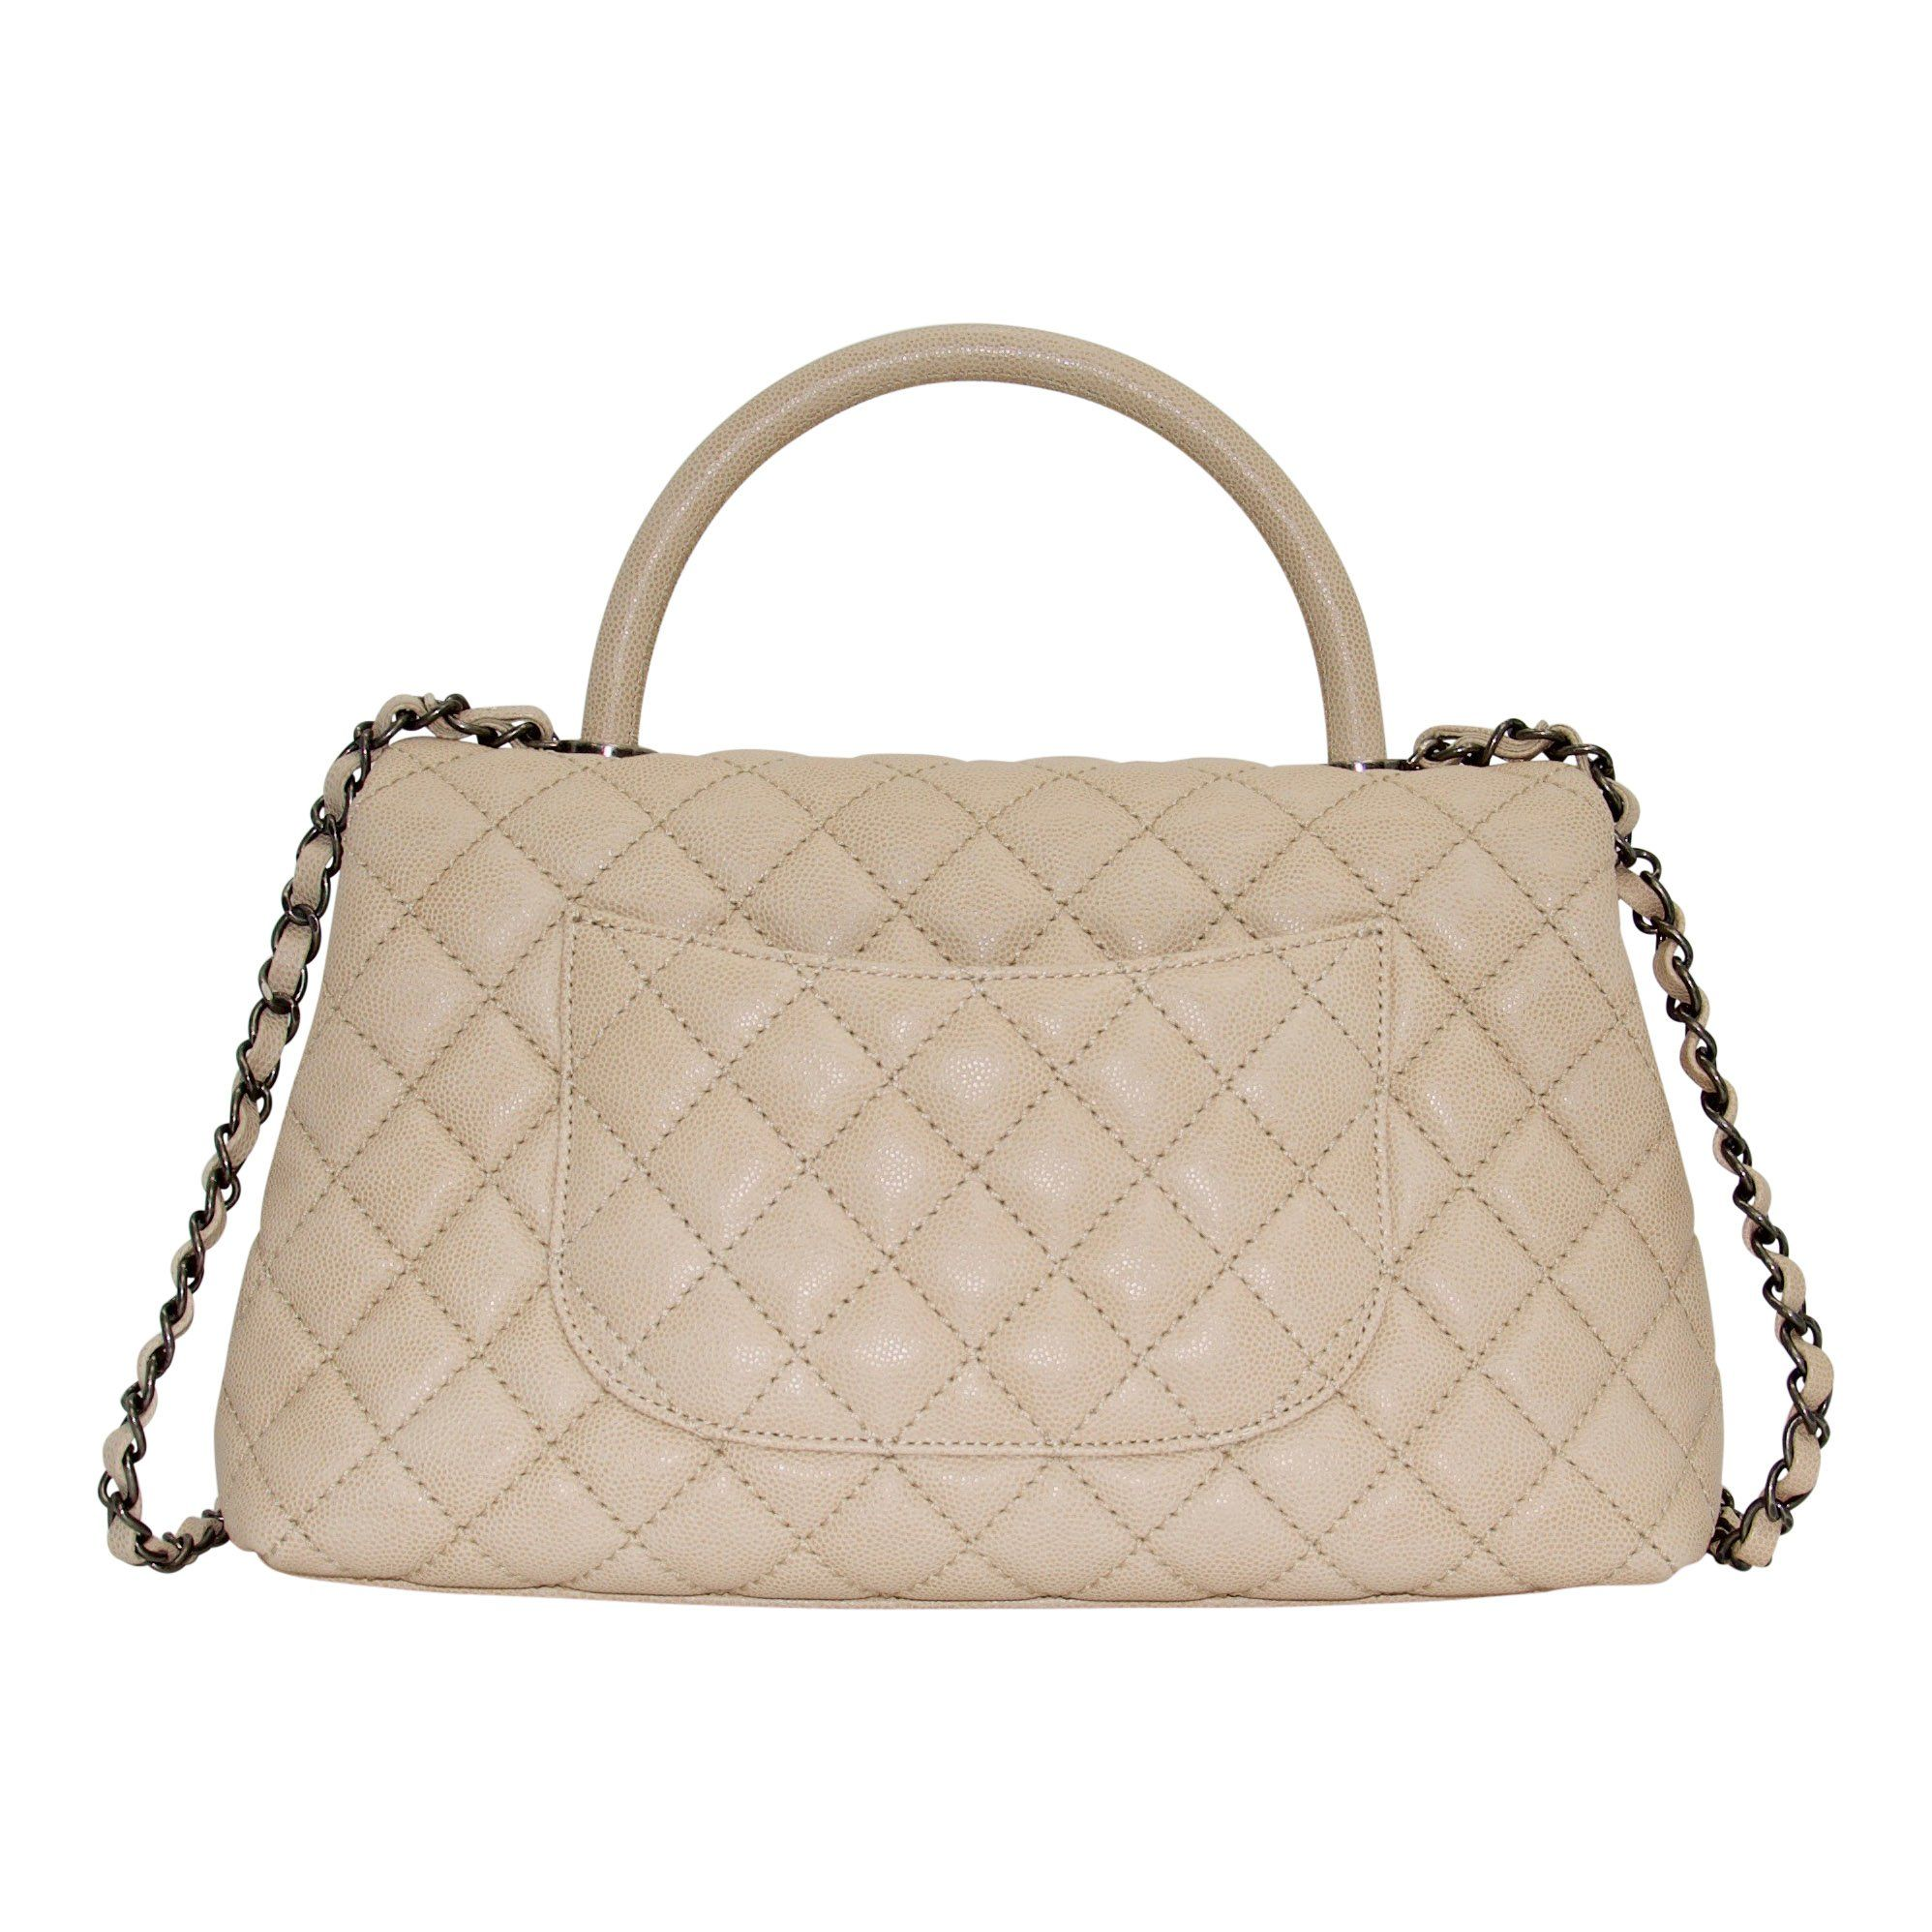 3c3b9bd66402 Chanel Coco Handle Bag - Oliver Jewellery